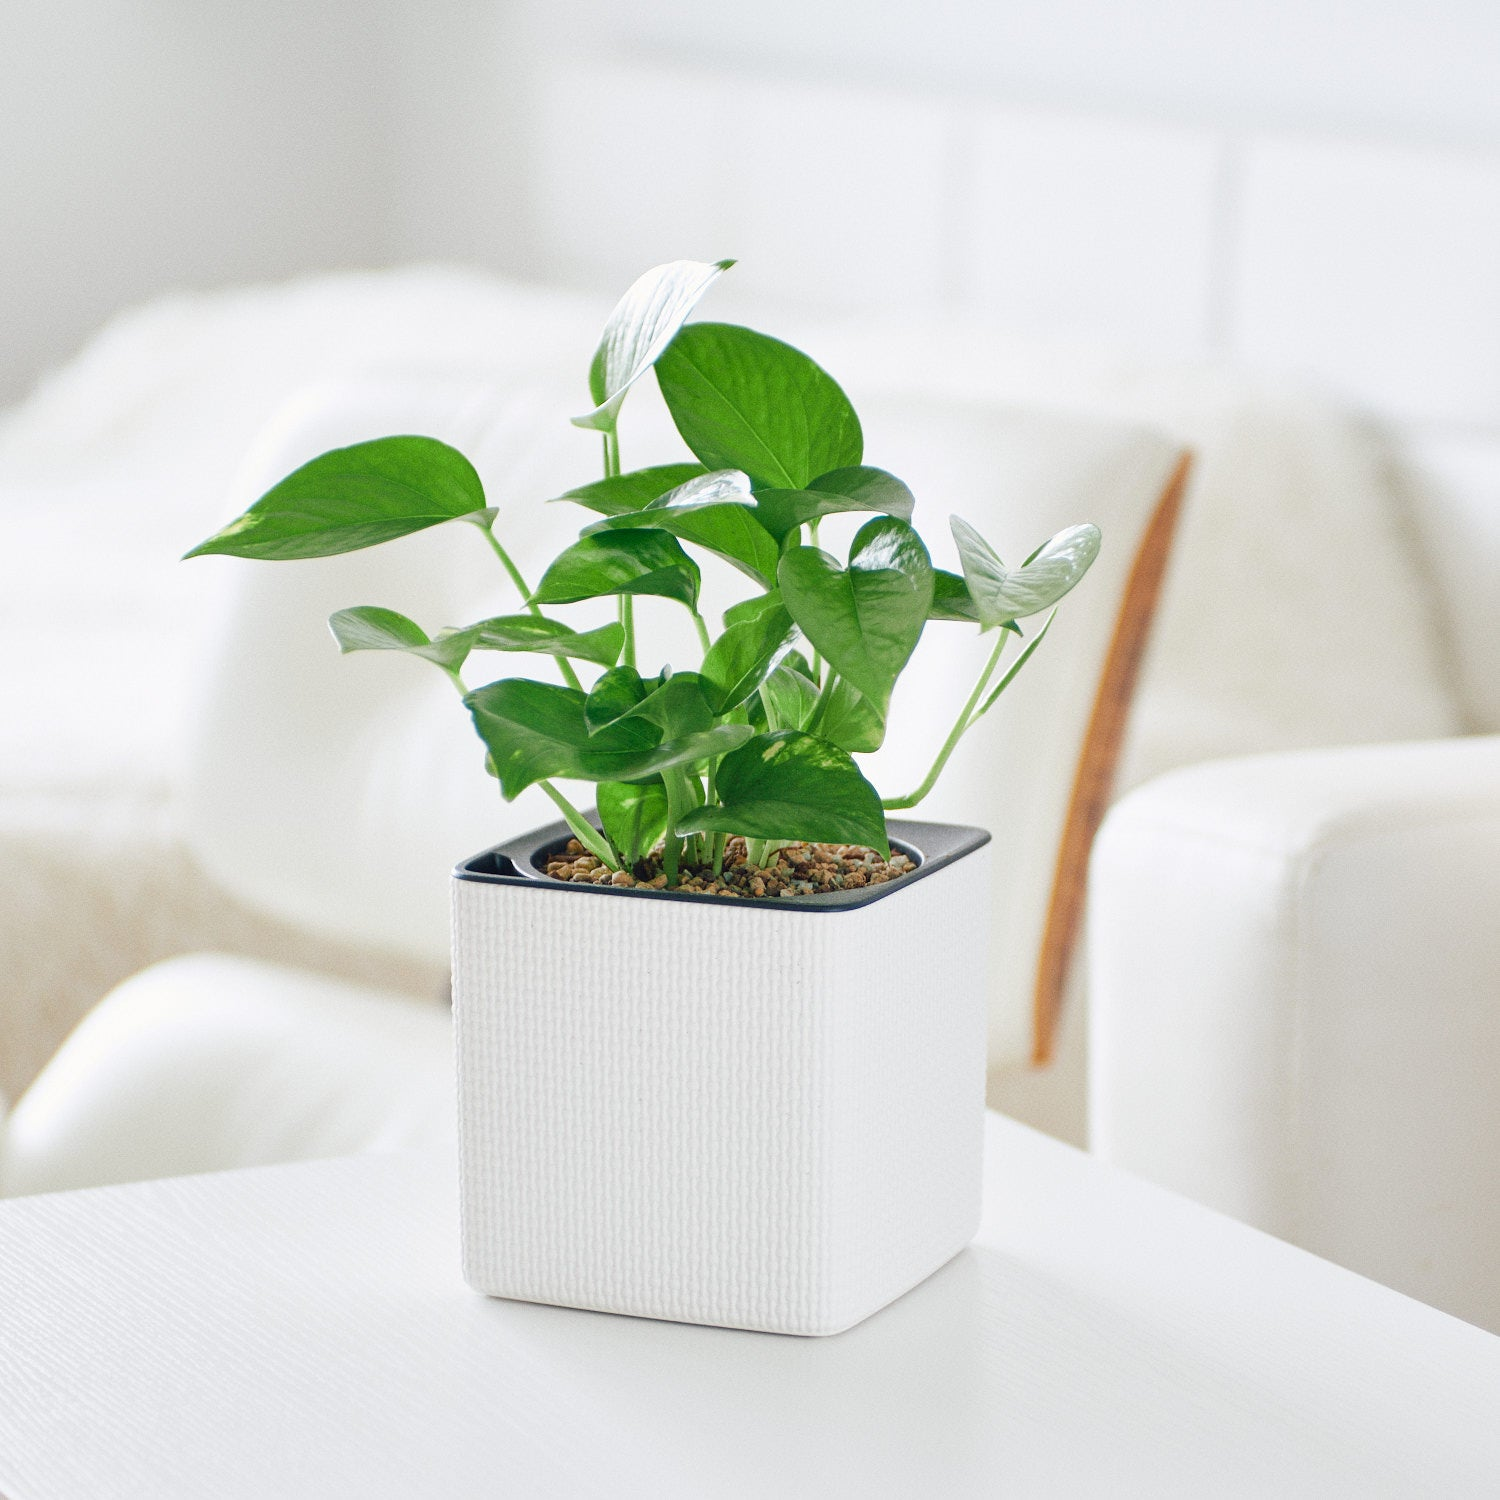 Pothos Plant In Lechuza Cube 14 White Planter | My City Plants